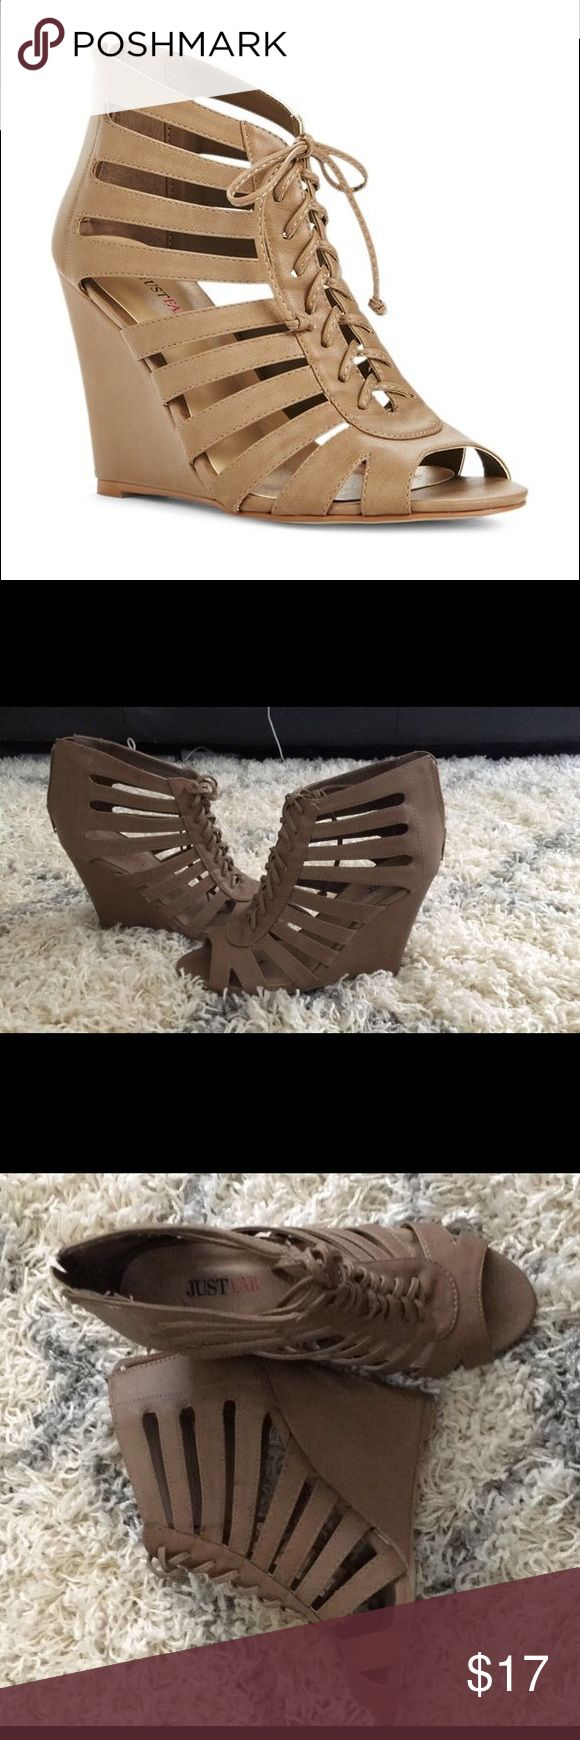 Tan wedge sandal Justfab wedge sandal. Size 6. like new condition JustFab Shoes Wedges